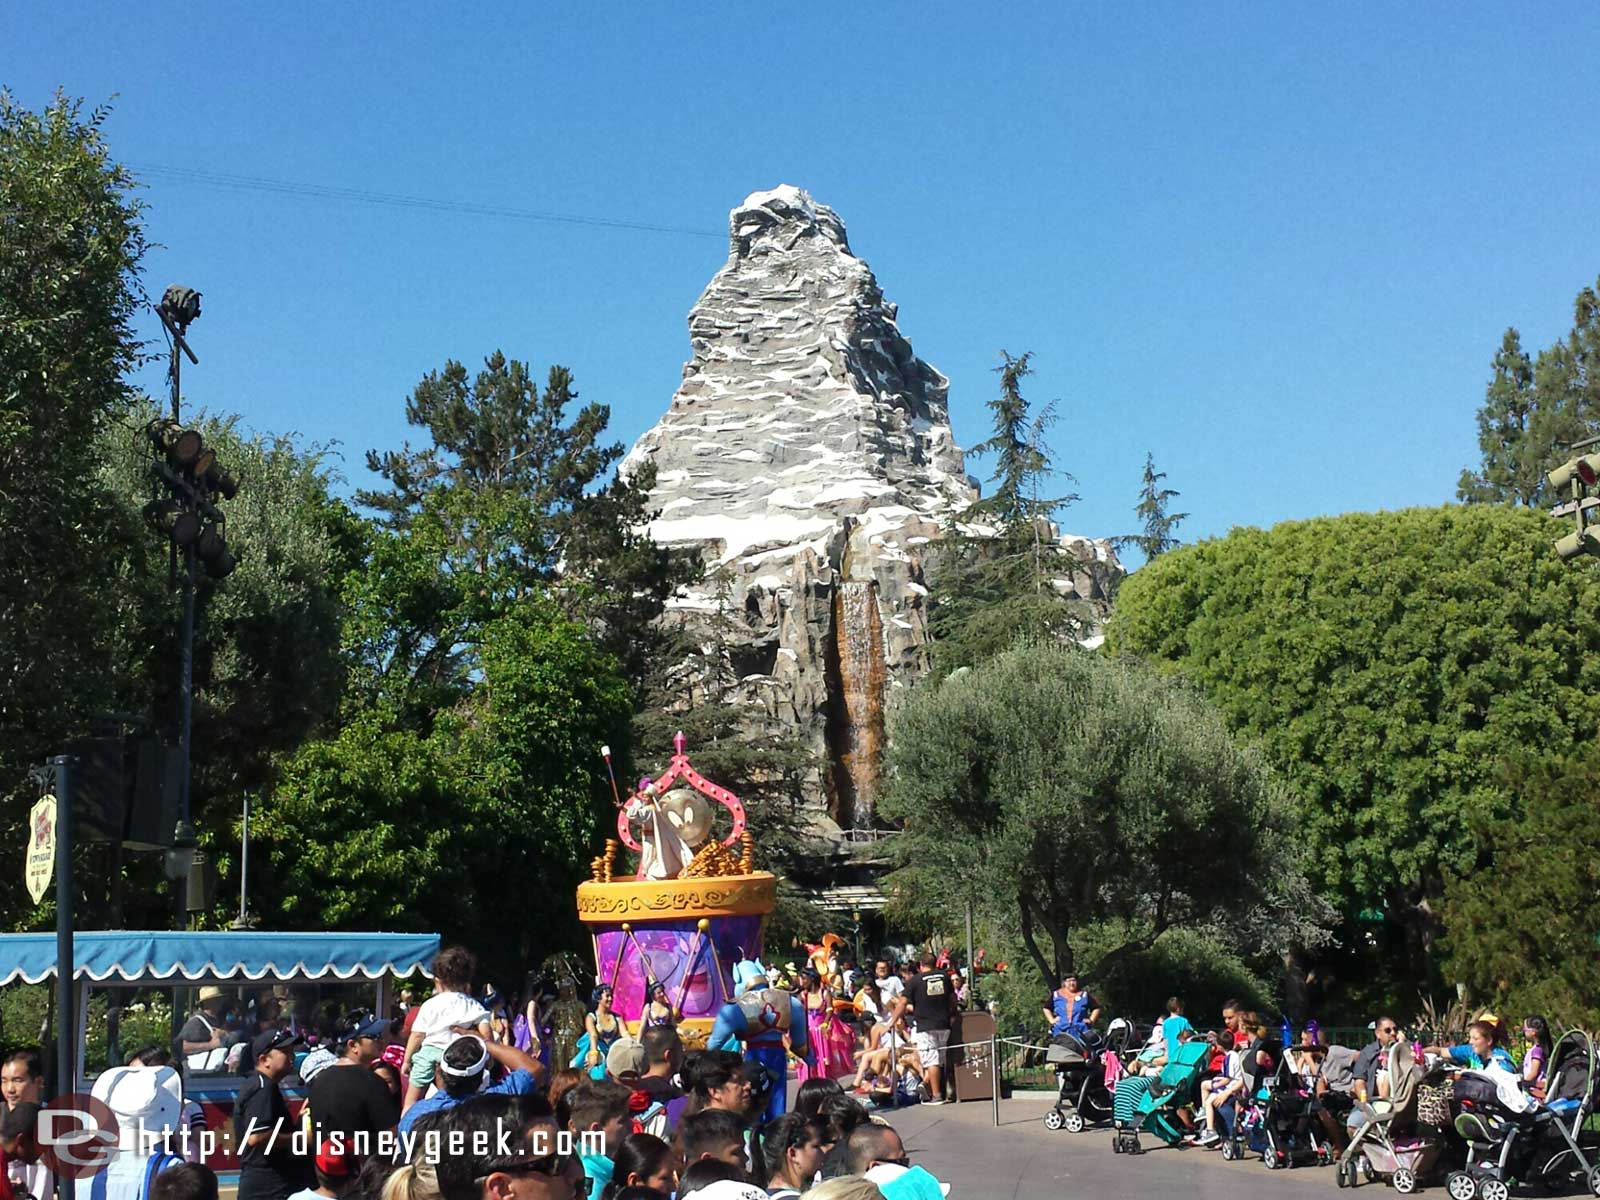 Soundsational is stopped.  Aladdin near the Matterhorn.  Opening float in the hub.